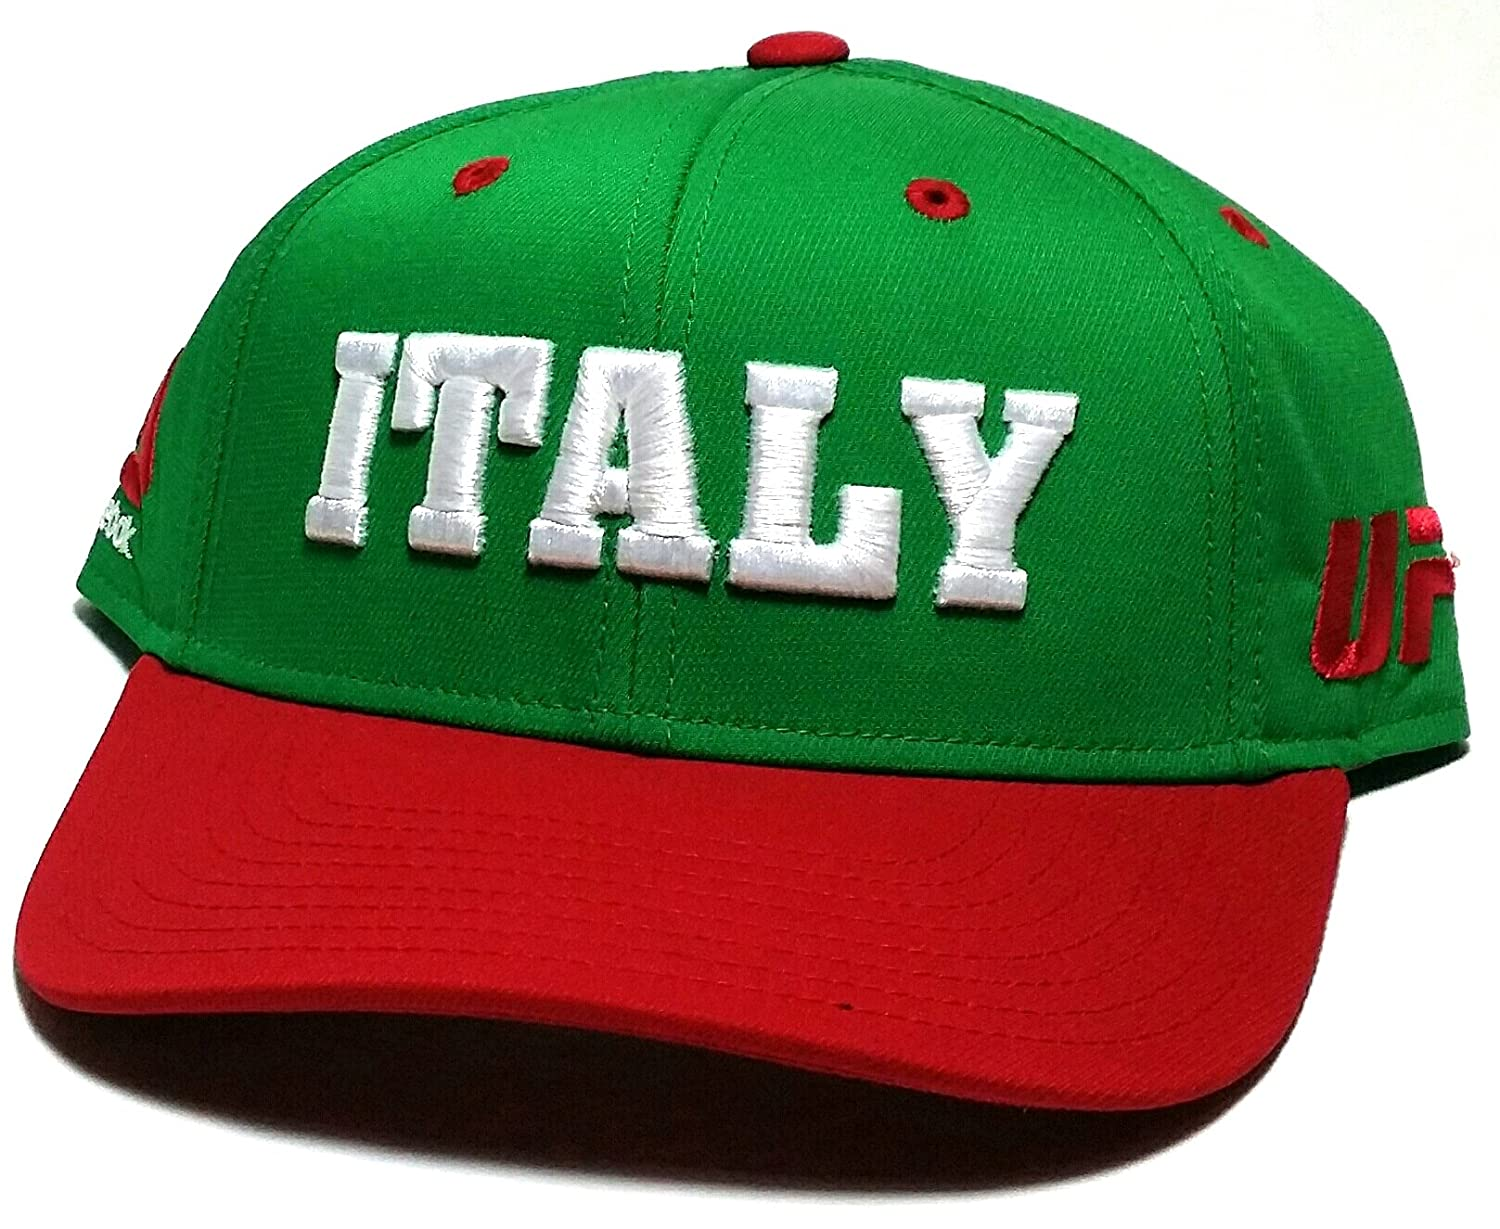 395577578e2 Amazon.com   Reebok UFC MMA Green Red Italy Country Pride Adjustable  Snapback Hat Cap   Sports   Outdoors